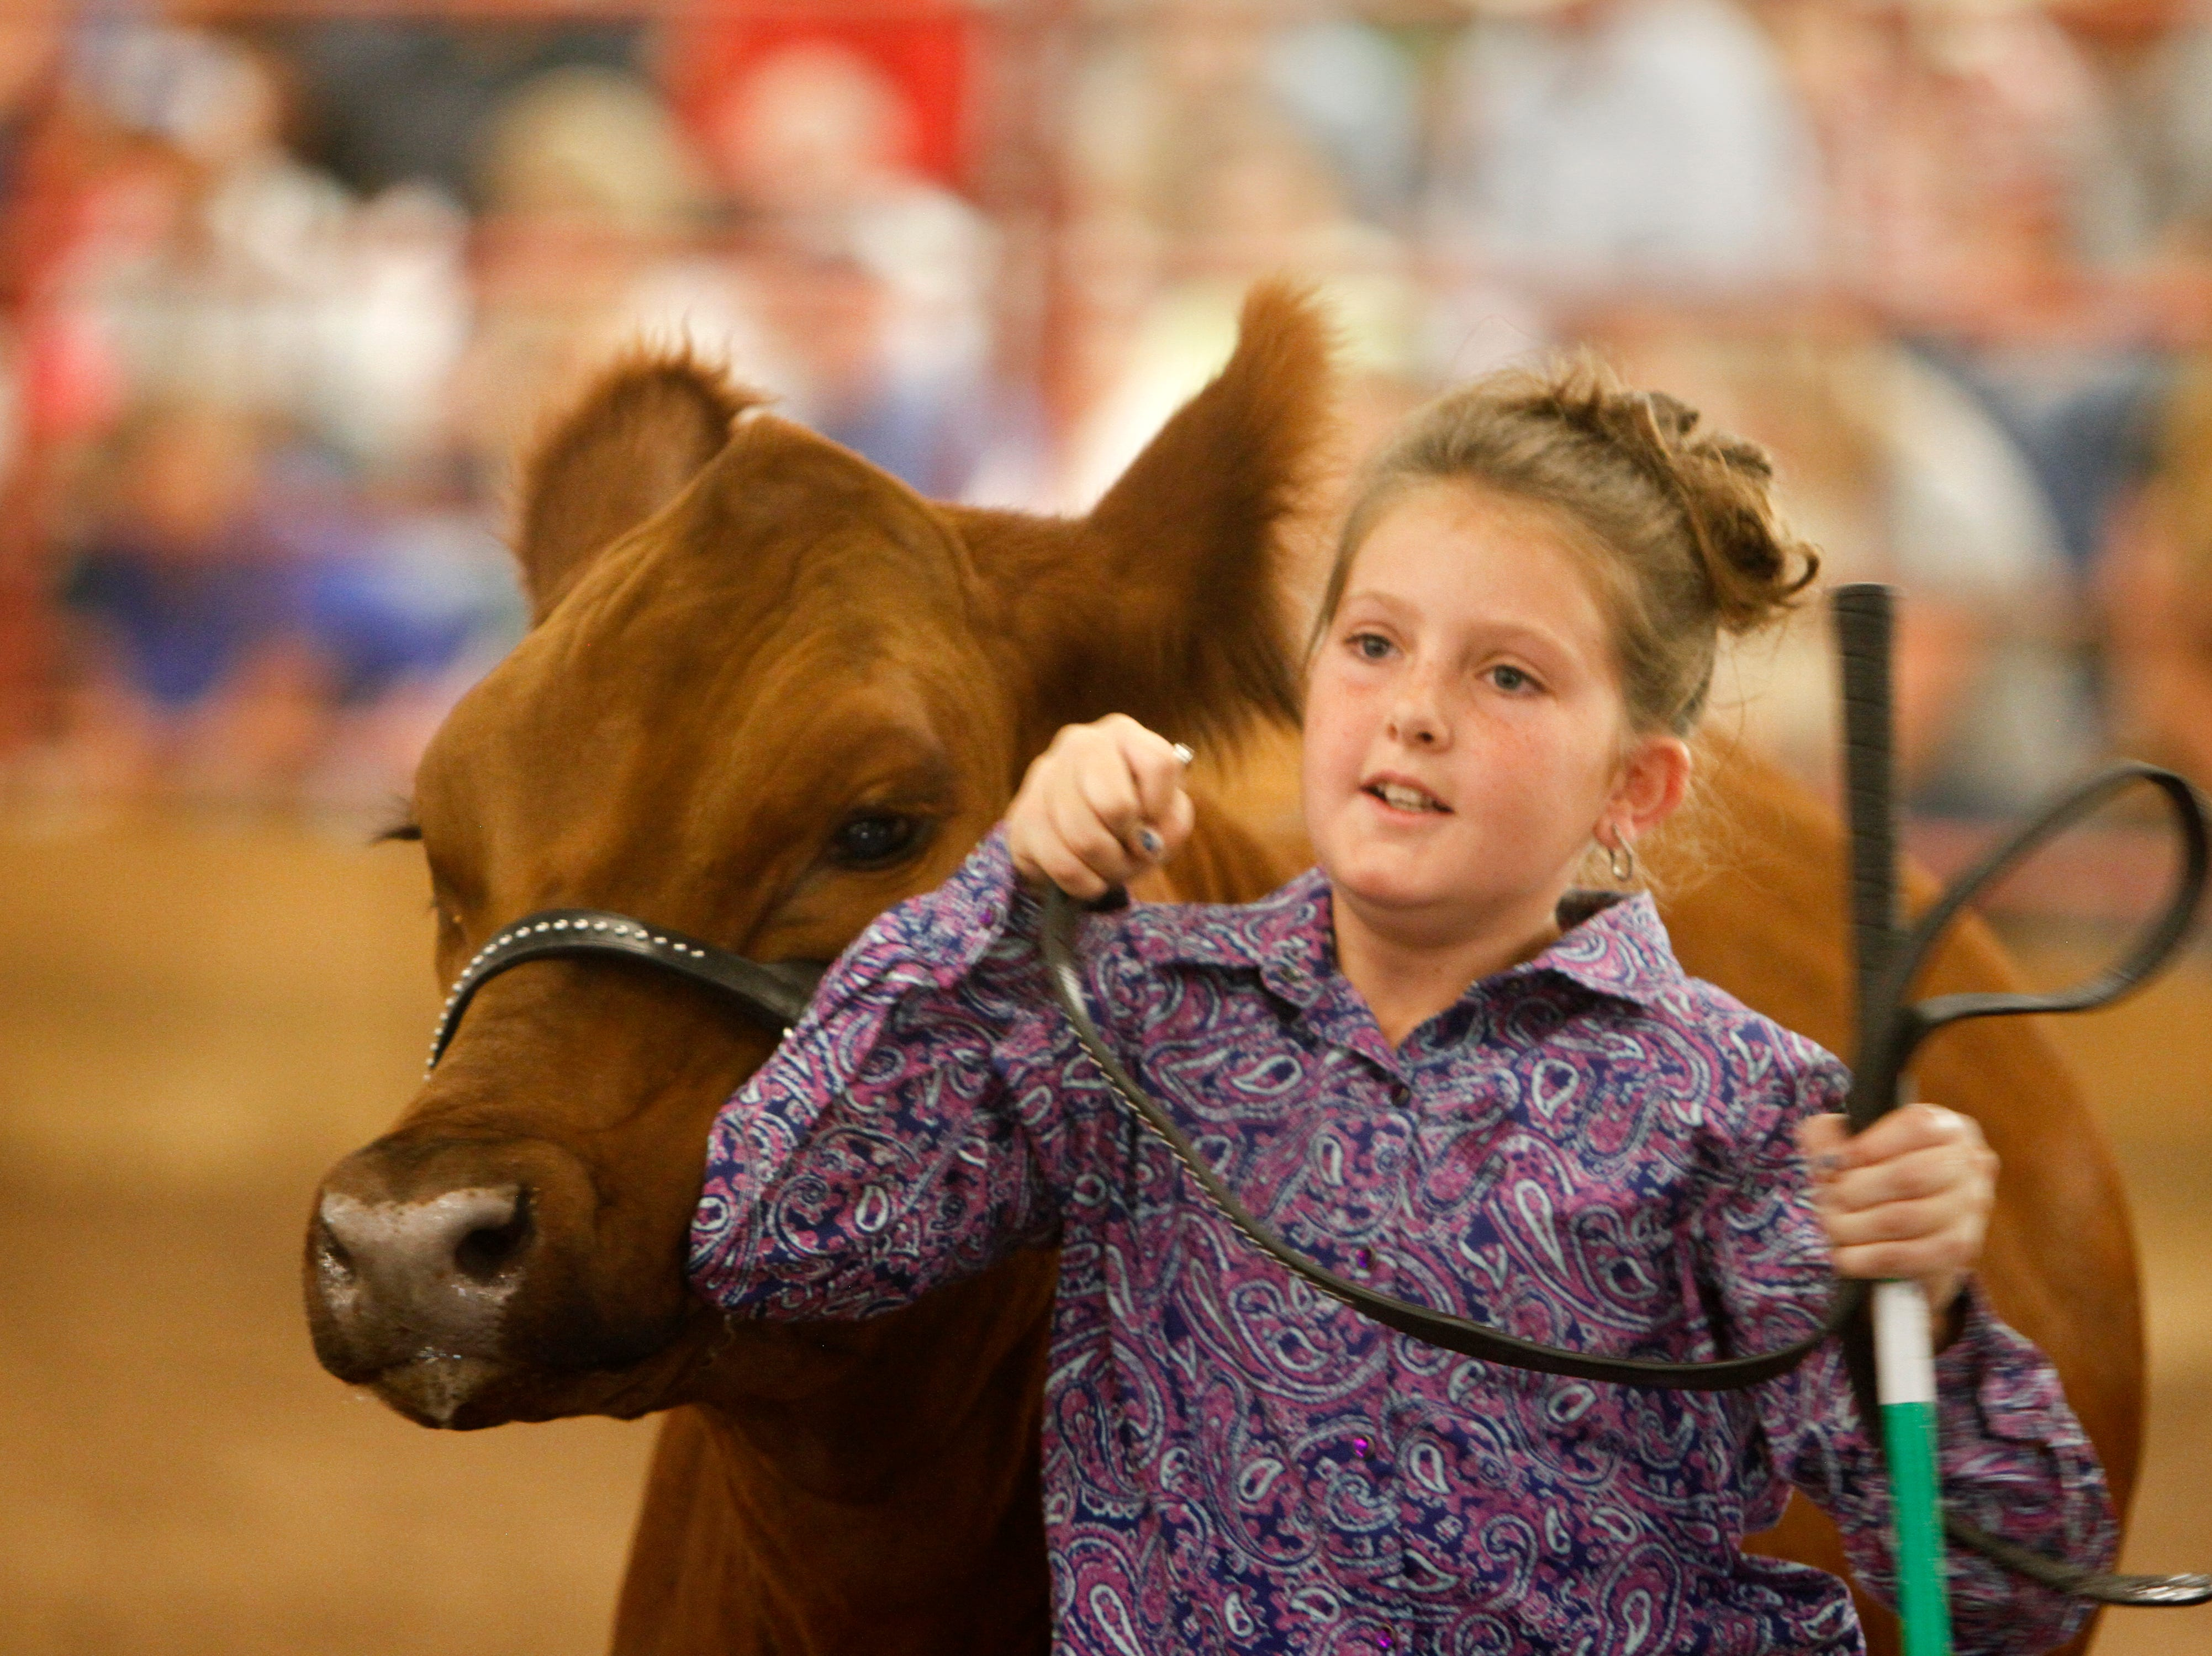 Charliann Nunn exits the arena with her steer Snickerdoodle after the conclusion of the market steer class 1 category judging, Thursday, Aug. 16, 2018 during the annual beef show at the San Juan County Fair at McGee Park in Farmington.